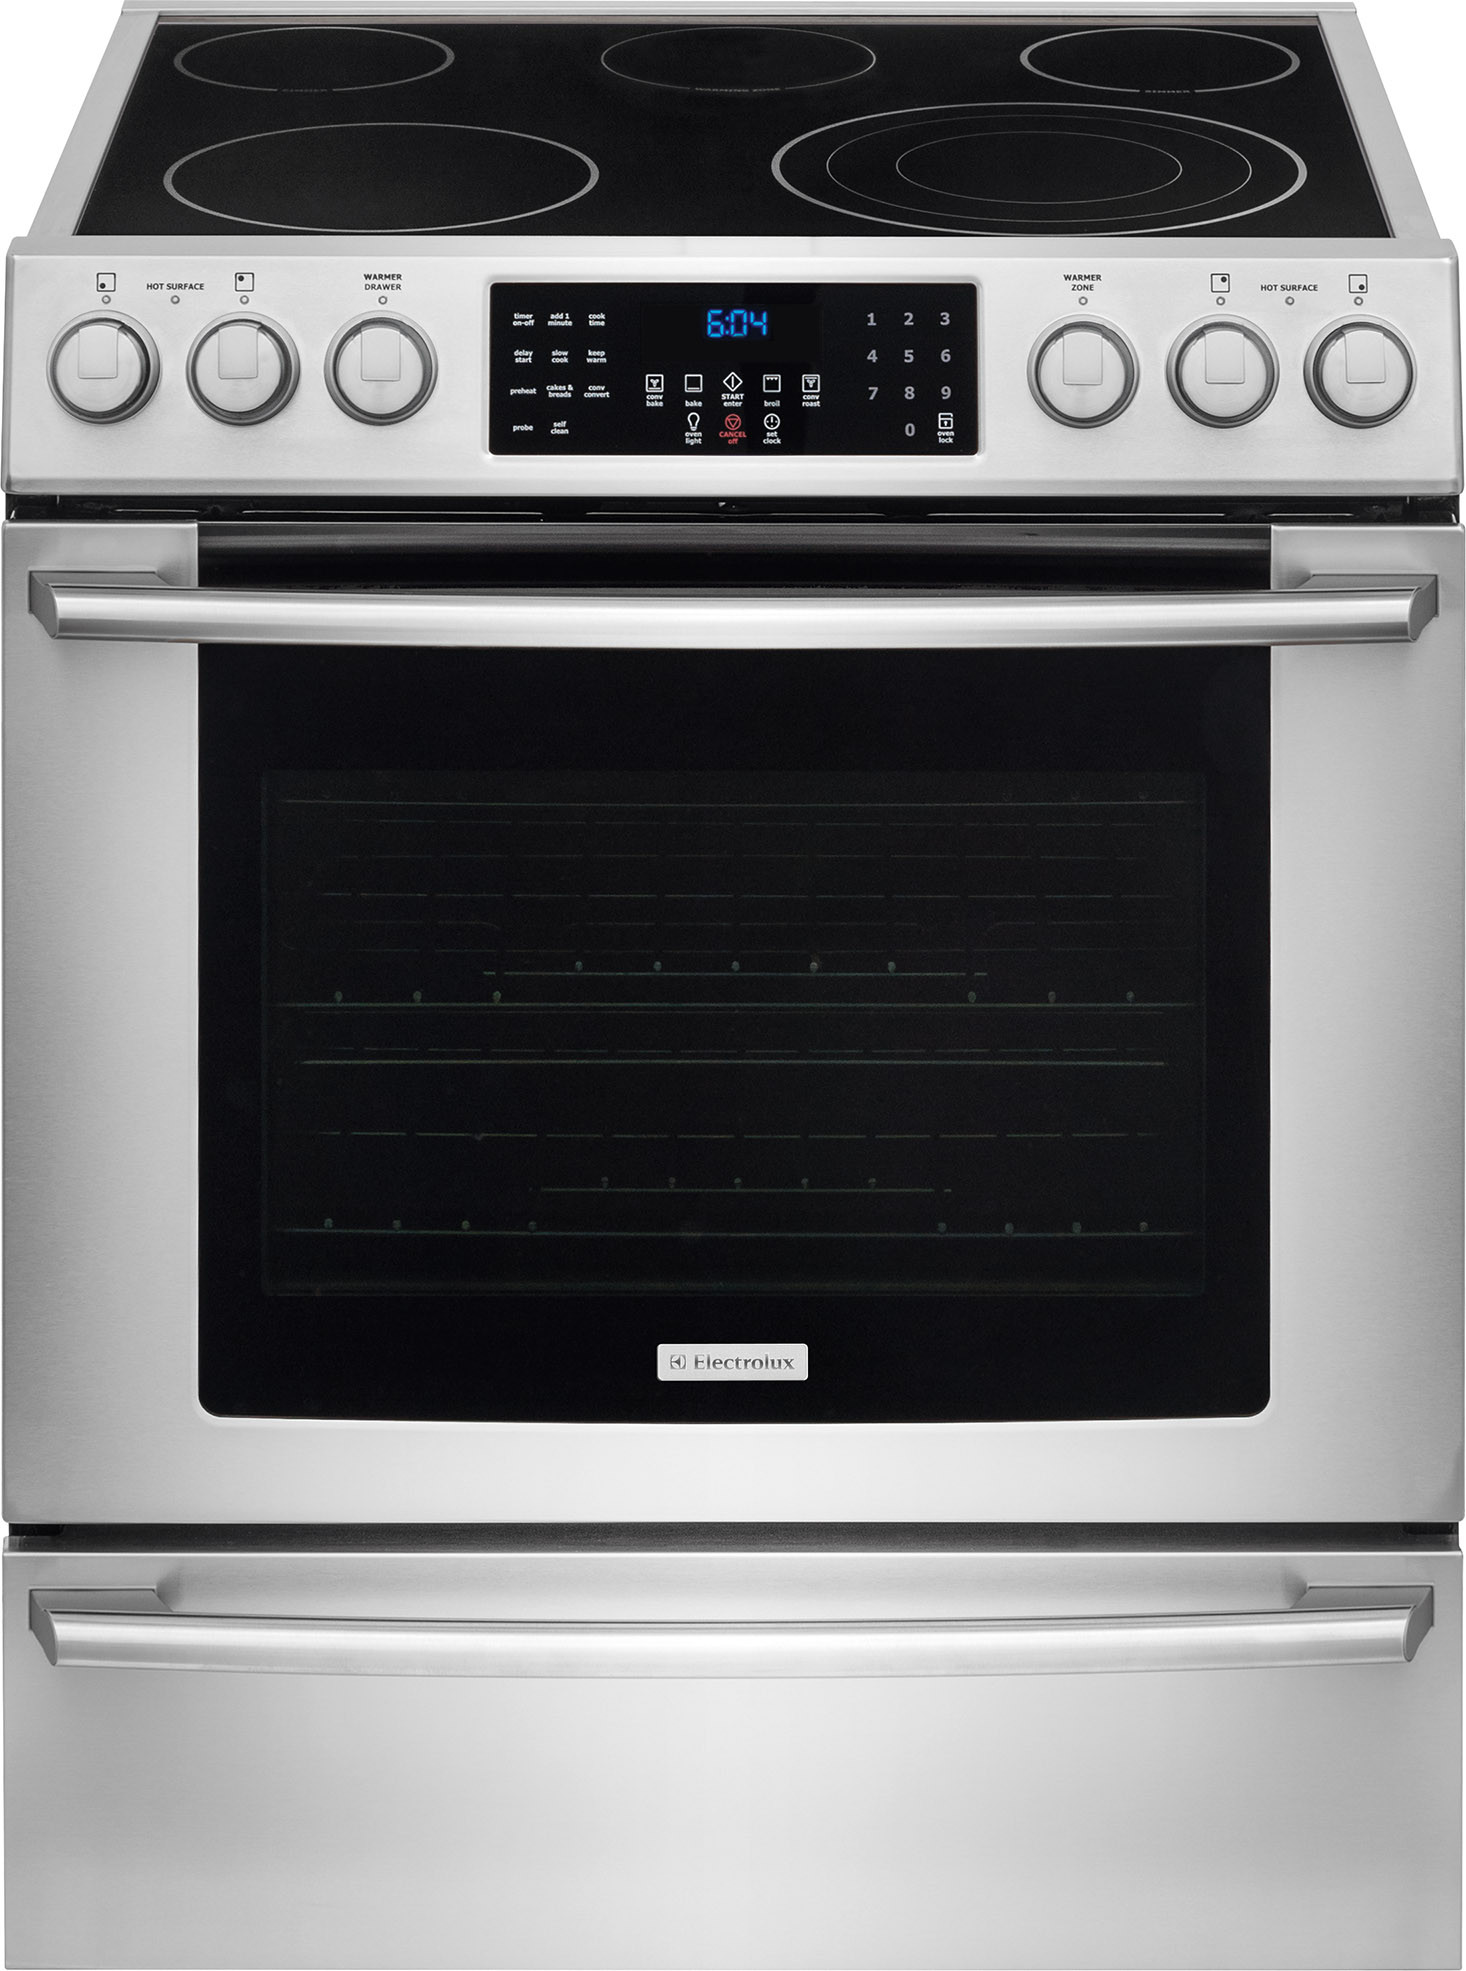 Electrolux Ei30ef45qs 30 Inch Freestanding Electric Range